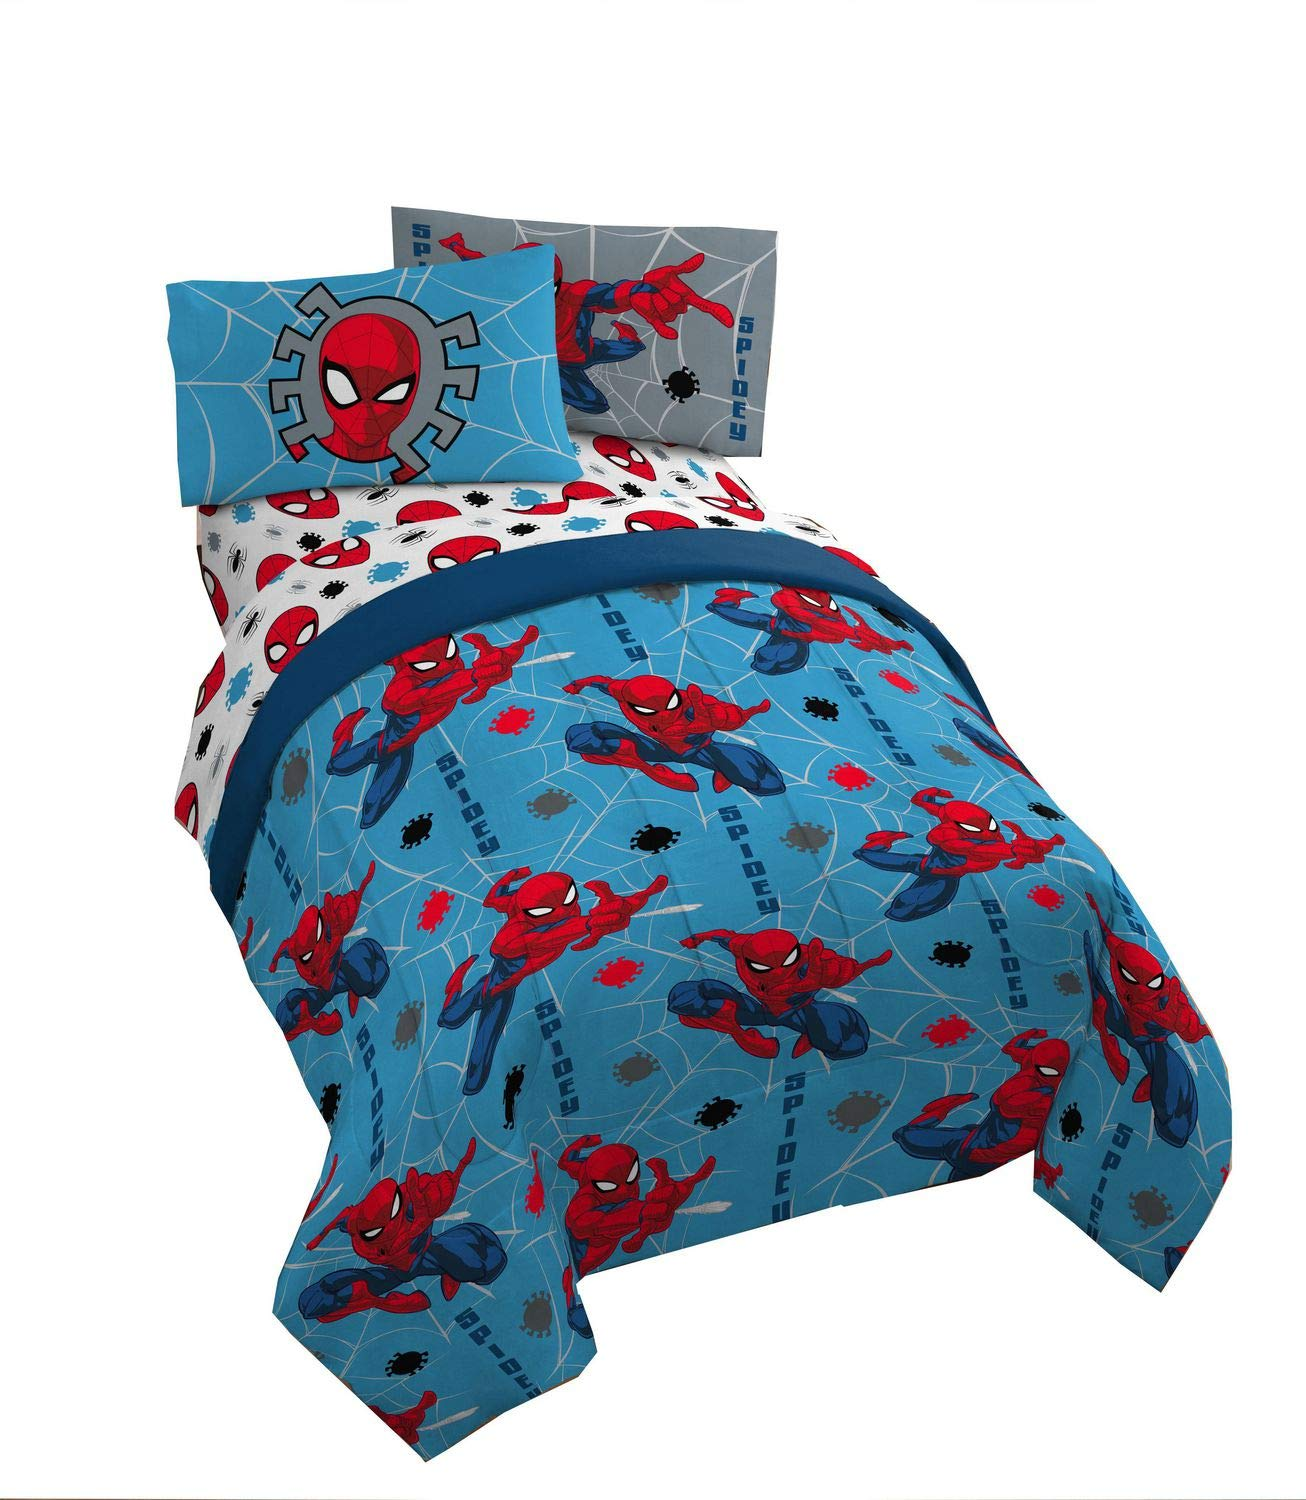 Spiderman Twin 4-Piece Bed Set Plus Bonus Bag Pillowcase Flat Sheet Fitted Sheet Includes Reversible Comforter